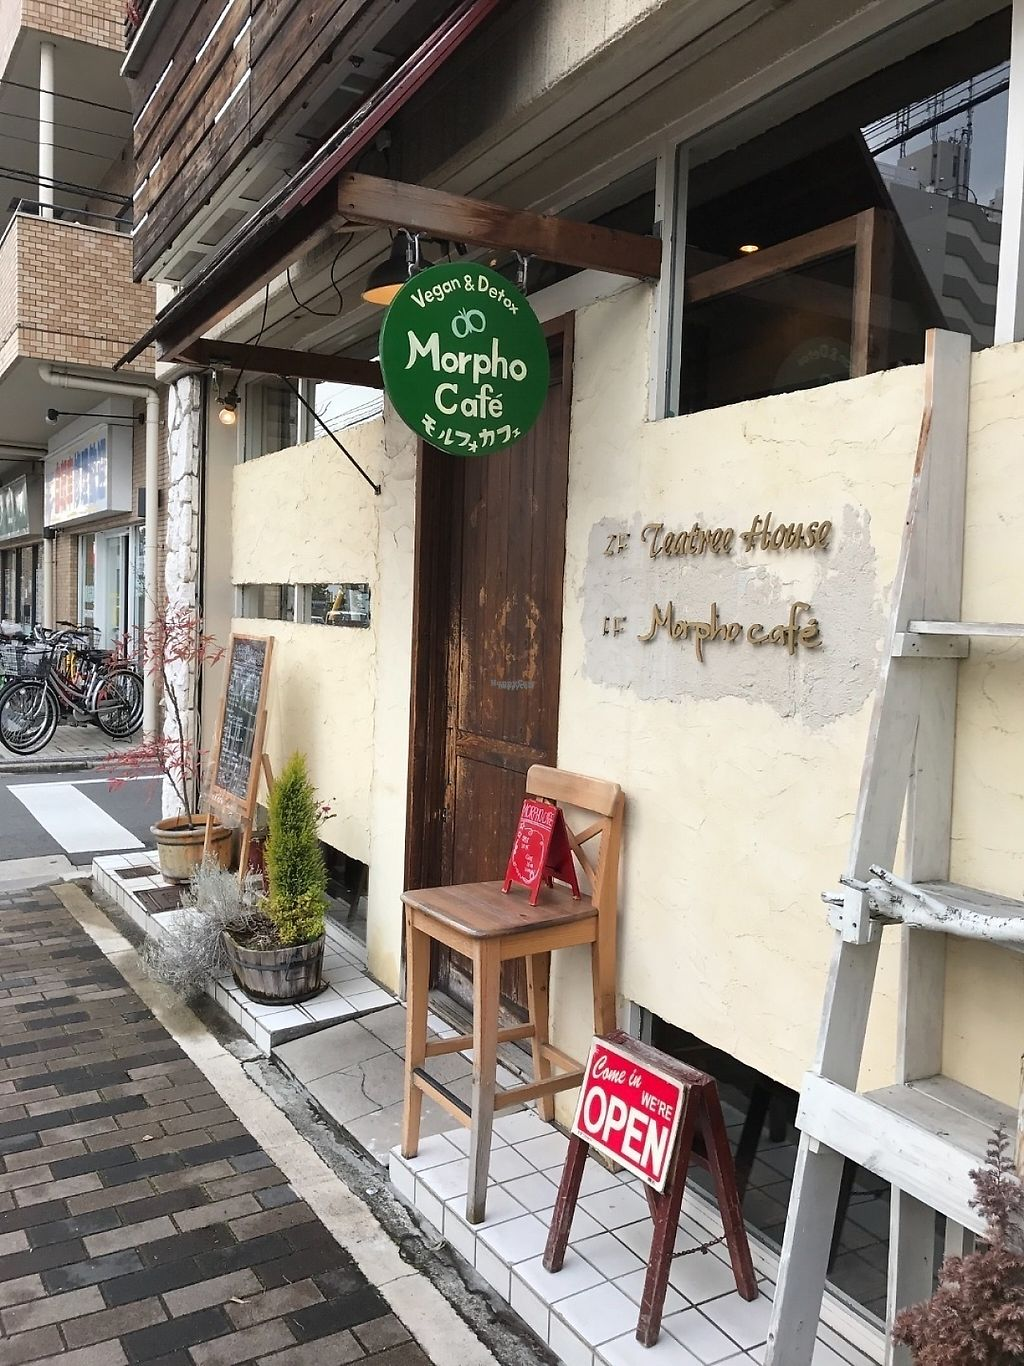 """Photo of Morpho Cafe  by <a href=""""/members/profile/Kevtool"""">Kevtool</a> <br/>Entrance <br/> March 8, 2017  - <a href='/contact/abuse/image/32107/234100'>Report</a>"""